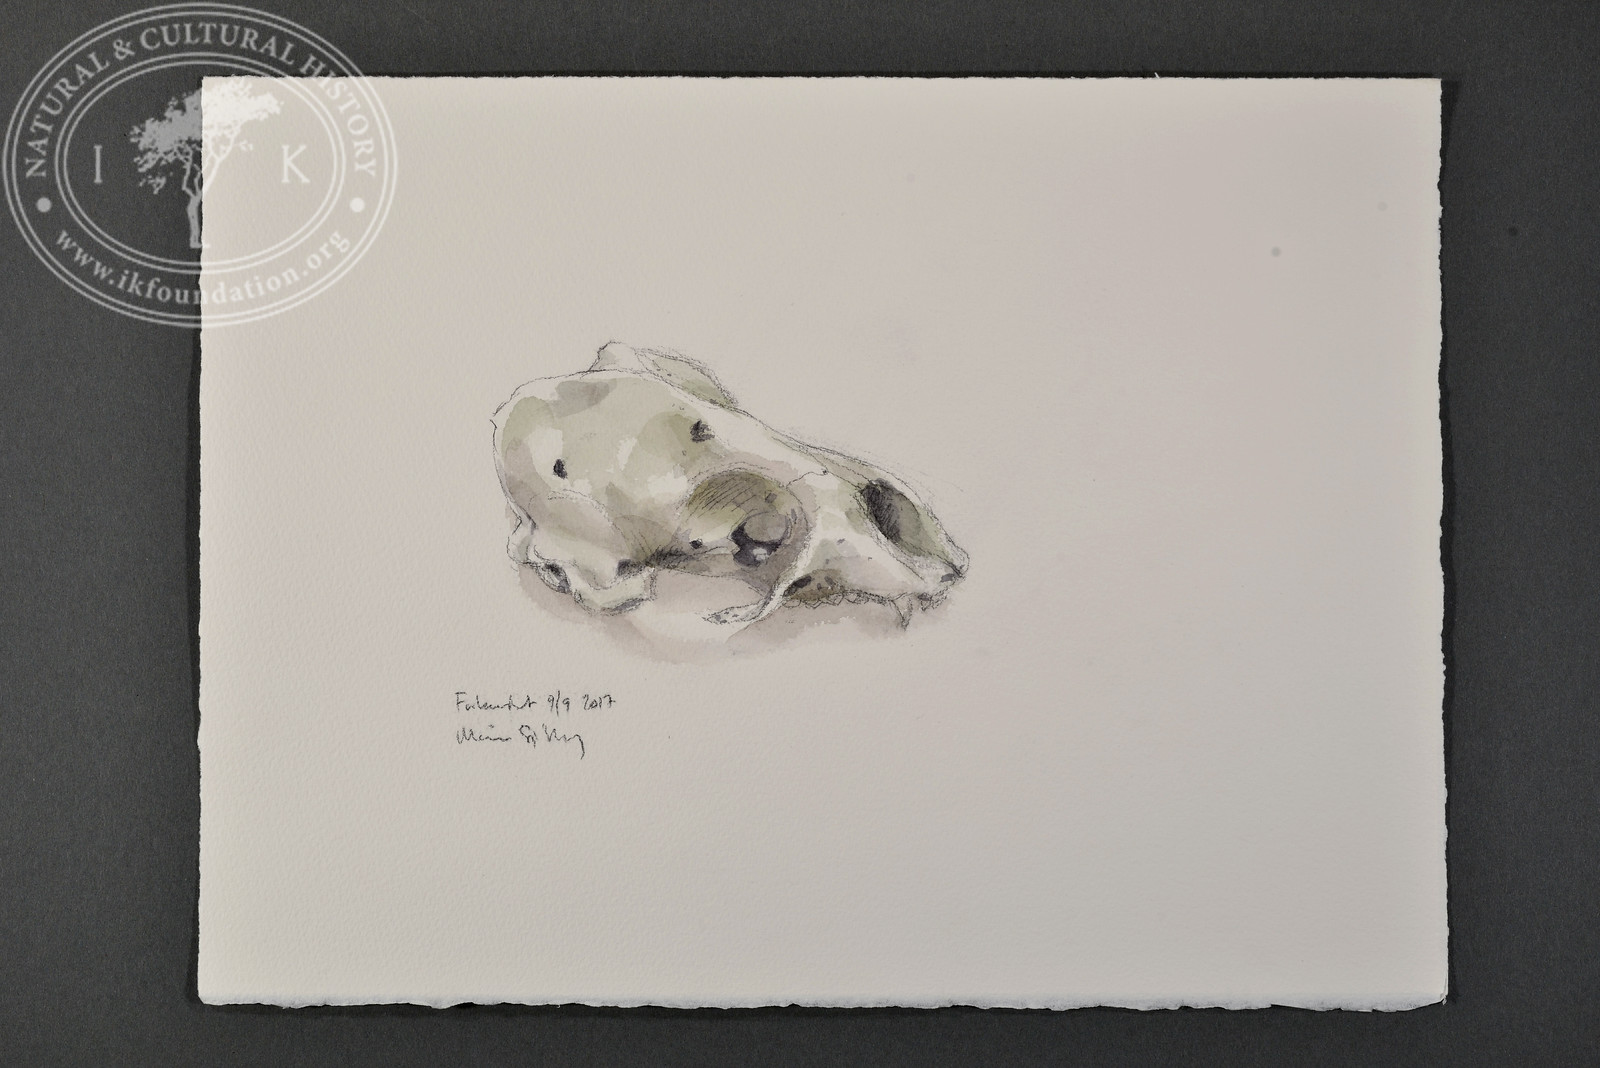 "Seal skull, Forlandet, Svalbard | 9.9.2017 |  ""I want to convey what I see with immediacy and simplicity to make the viewer feel present on the Arctic scene."" 